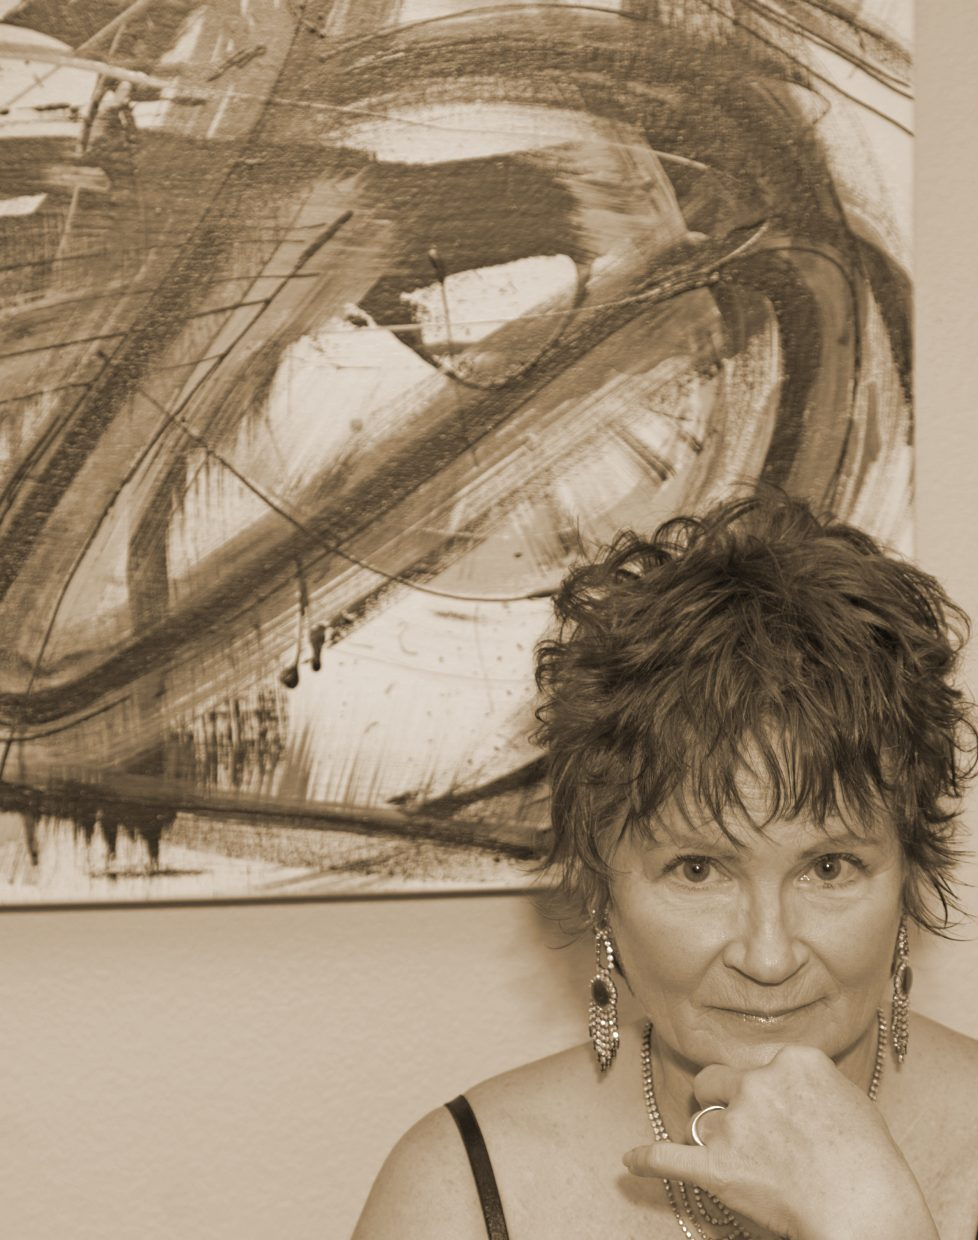 Local abstract artist Jan Maret Willman will have her work featured at the Chief Theater and Harwigs for the First Friday Artwalk this month.